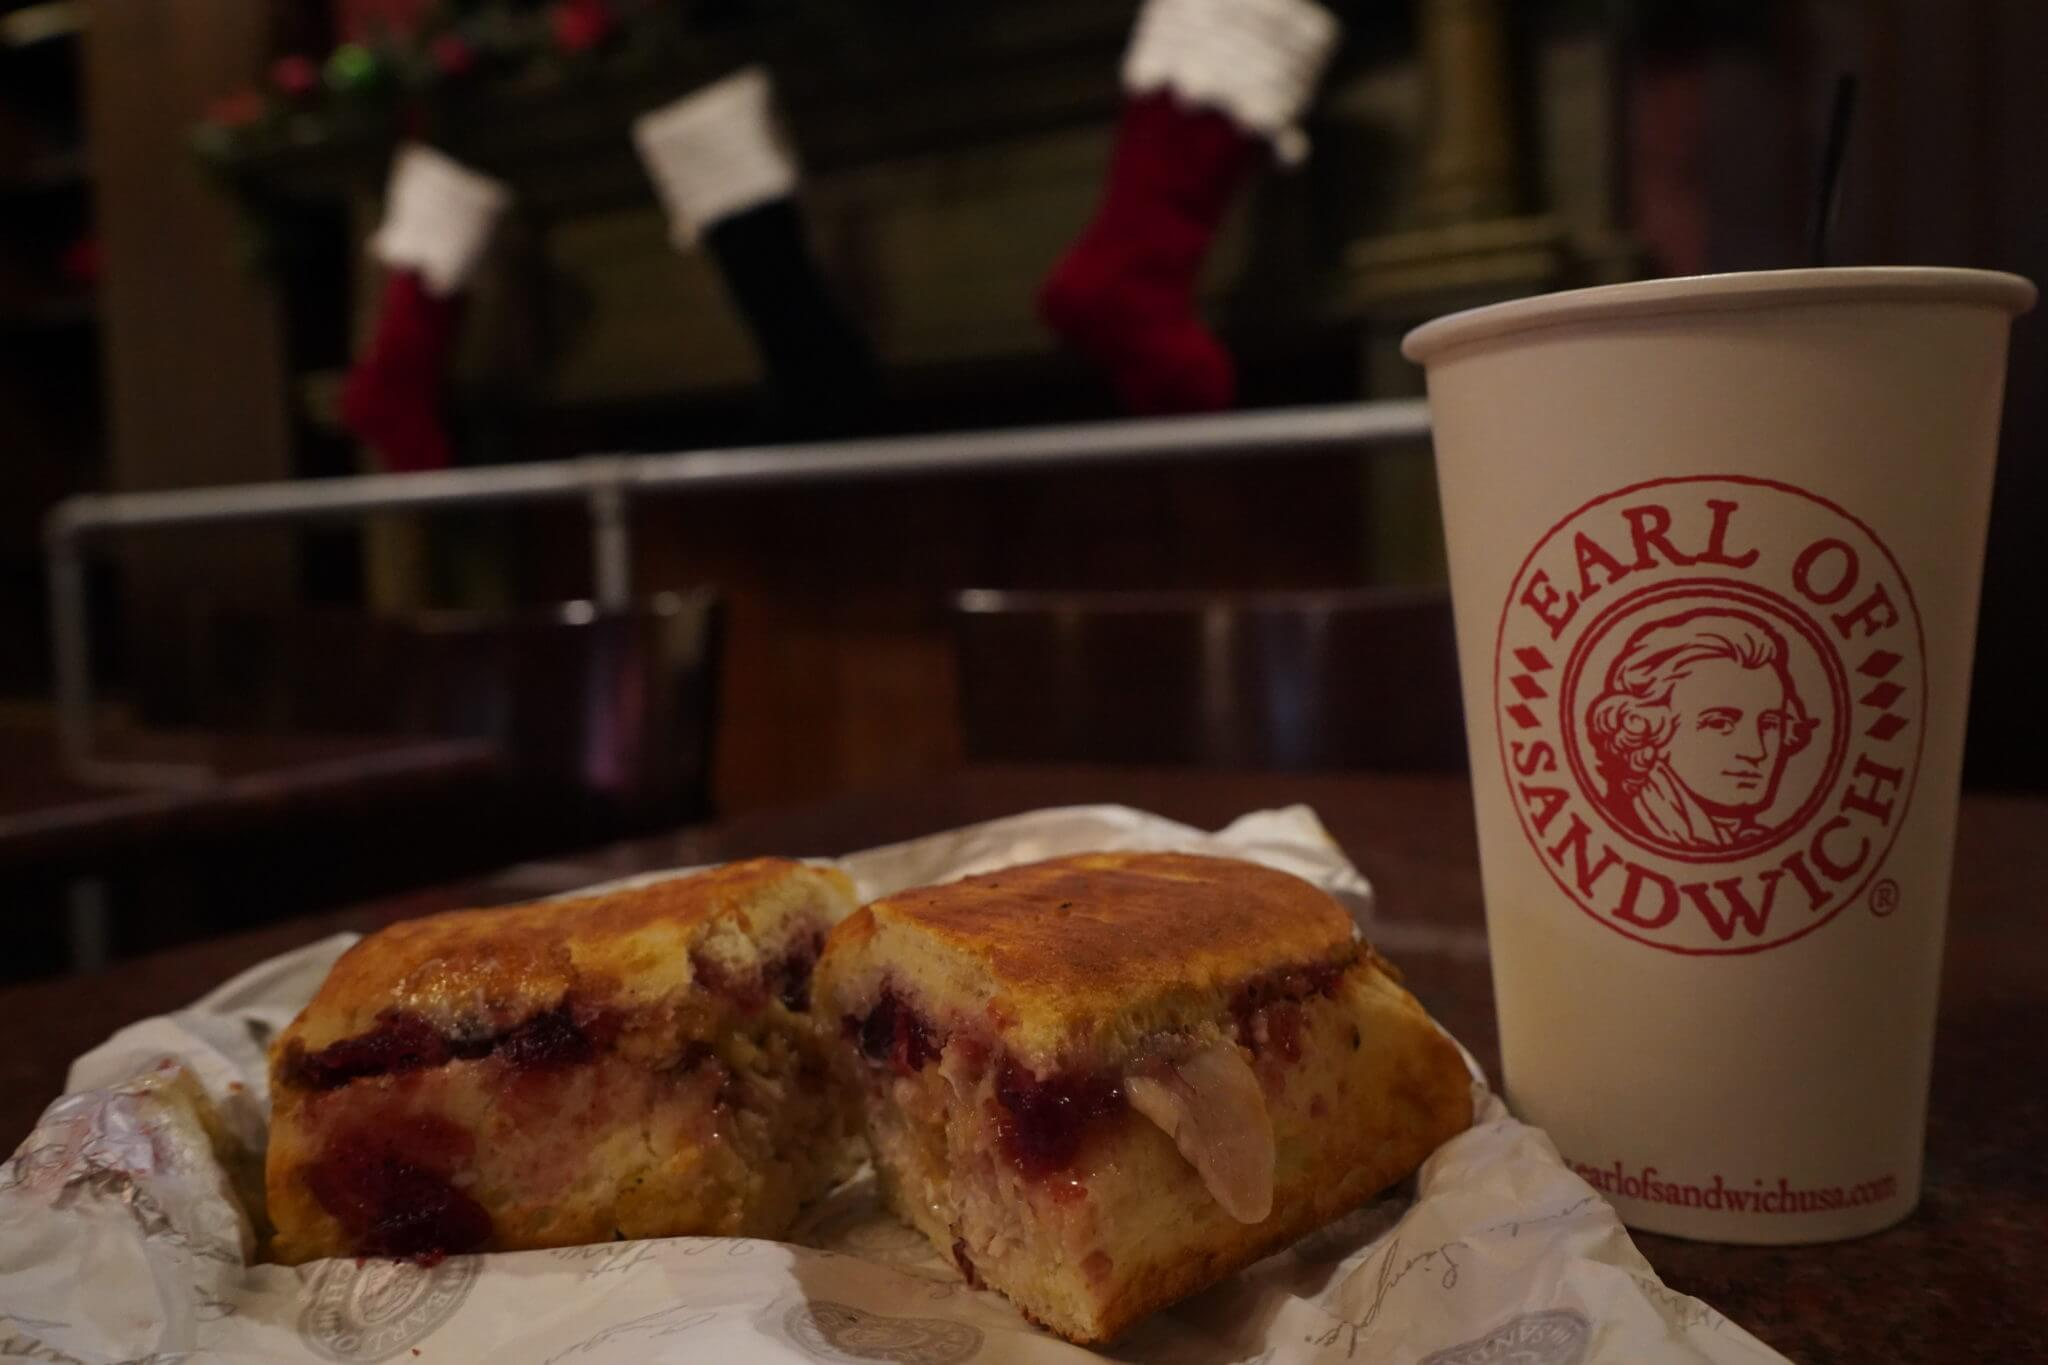 Holiday Turkey Sandwich with Stuffing and Cranberries and Coffee from Earl of Sandwich at Disney Springs